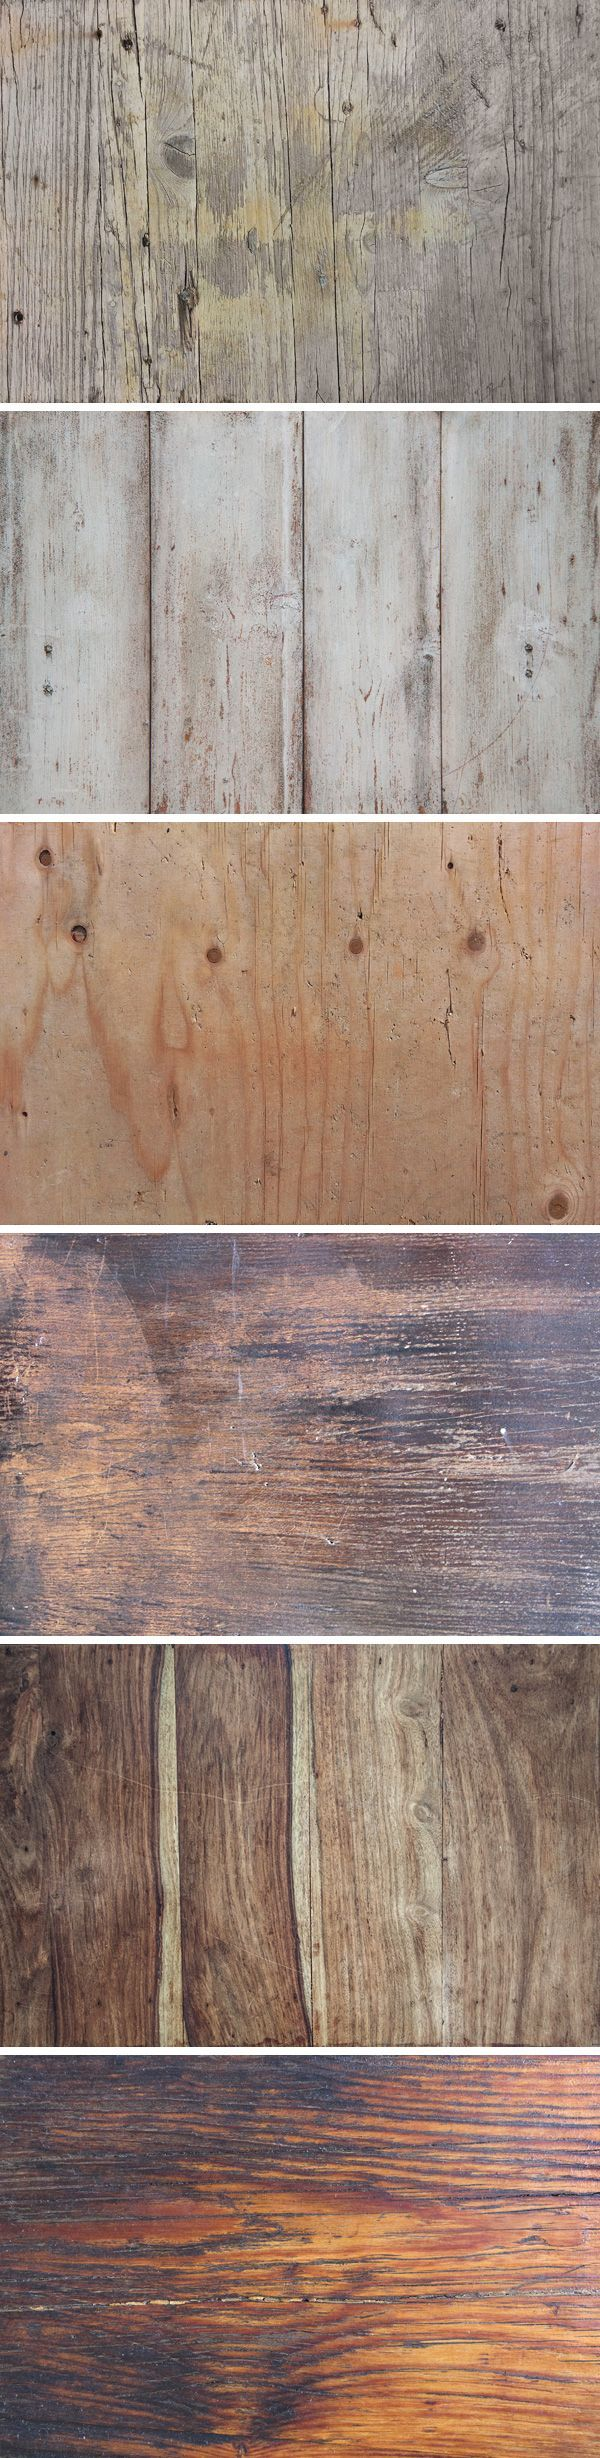 I'm glad to introduce the third volume of our vintage wood textures collection. Just like the previous sets, this one includes...